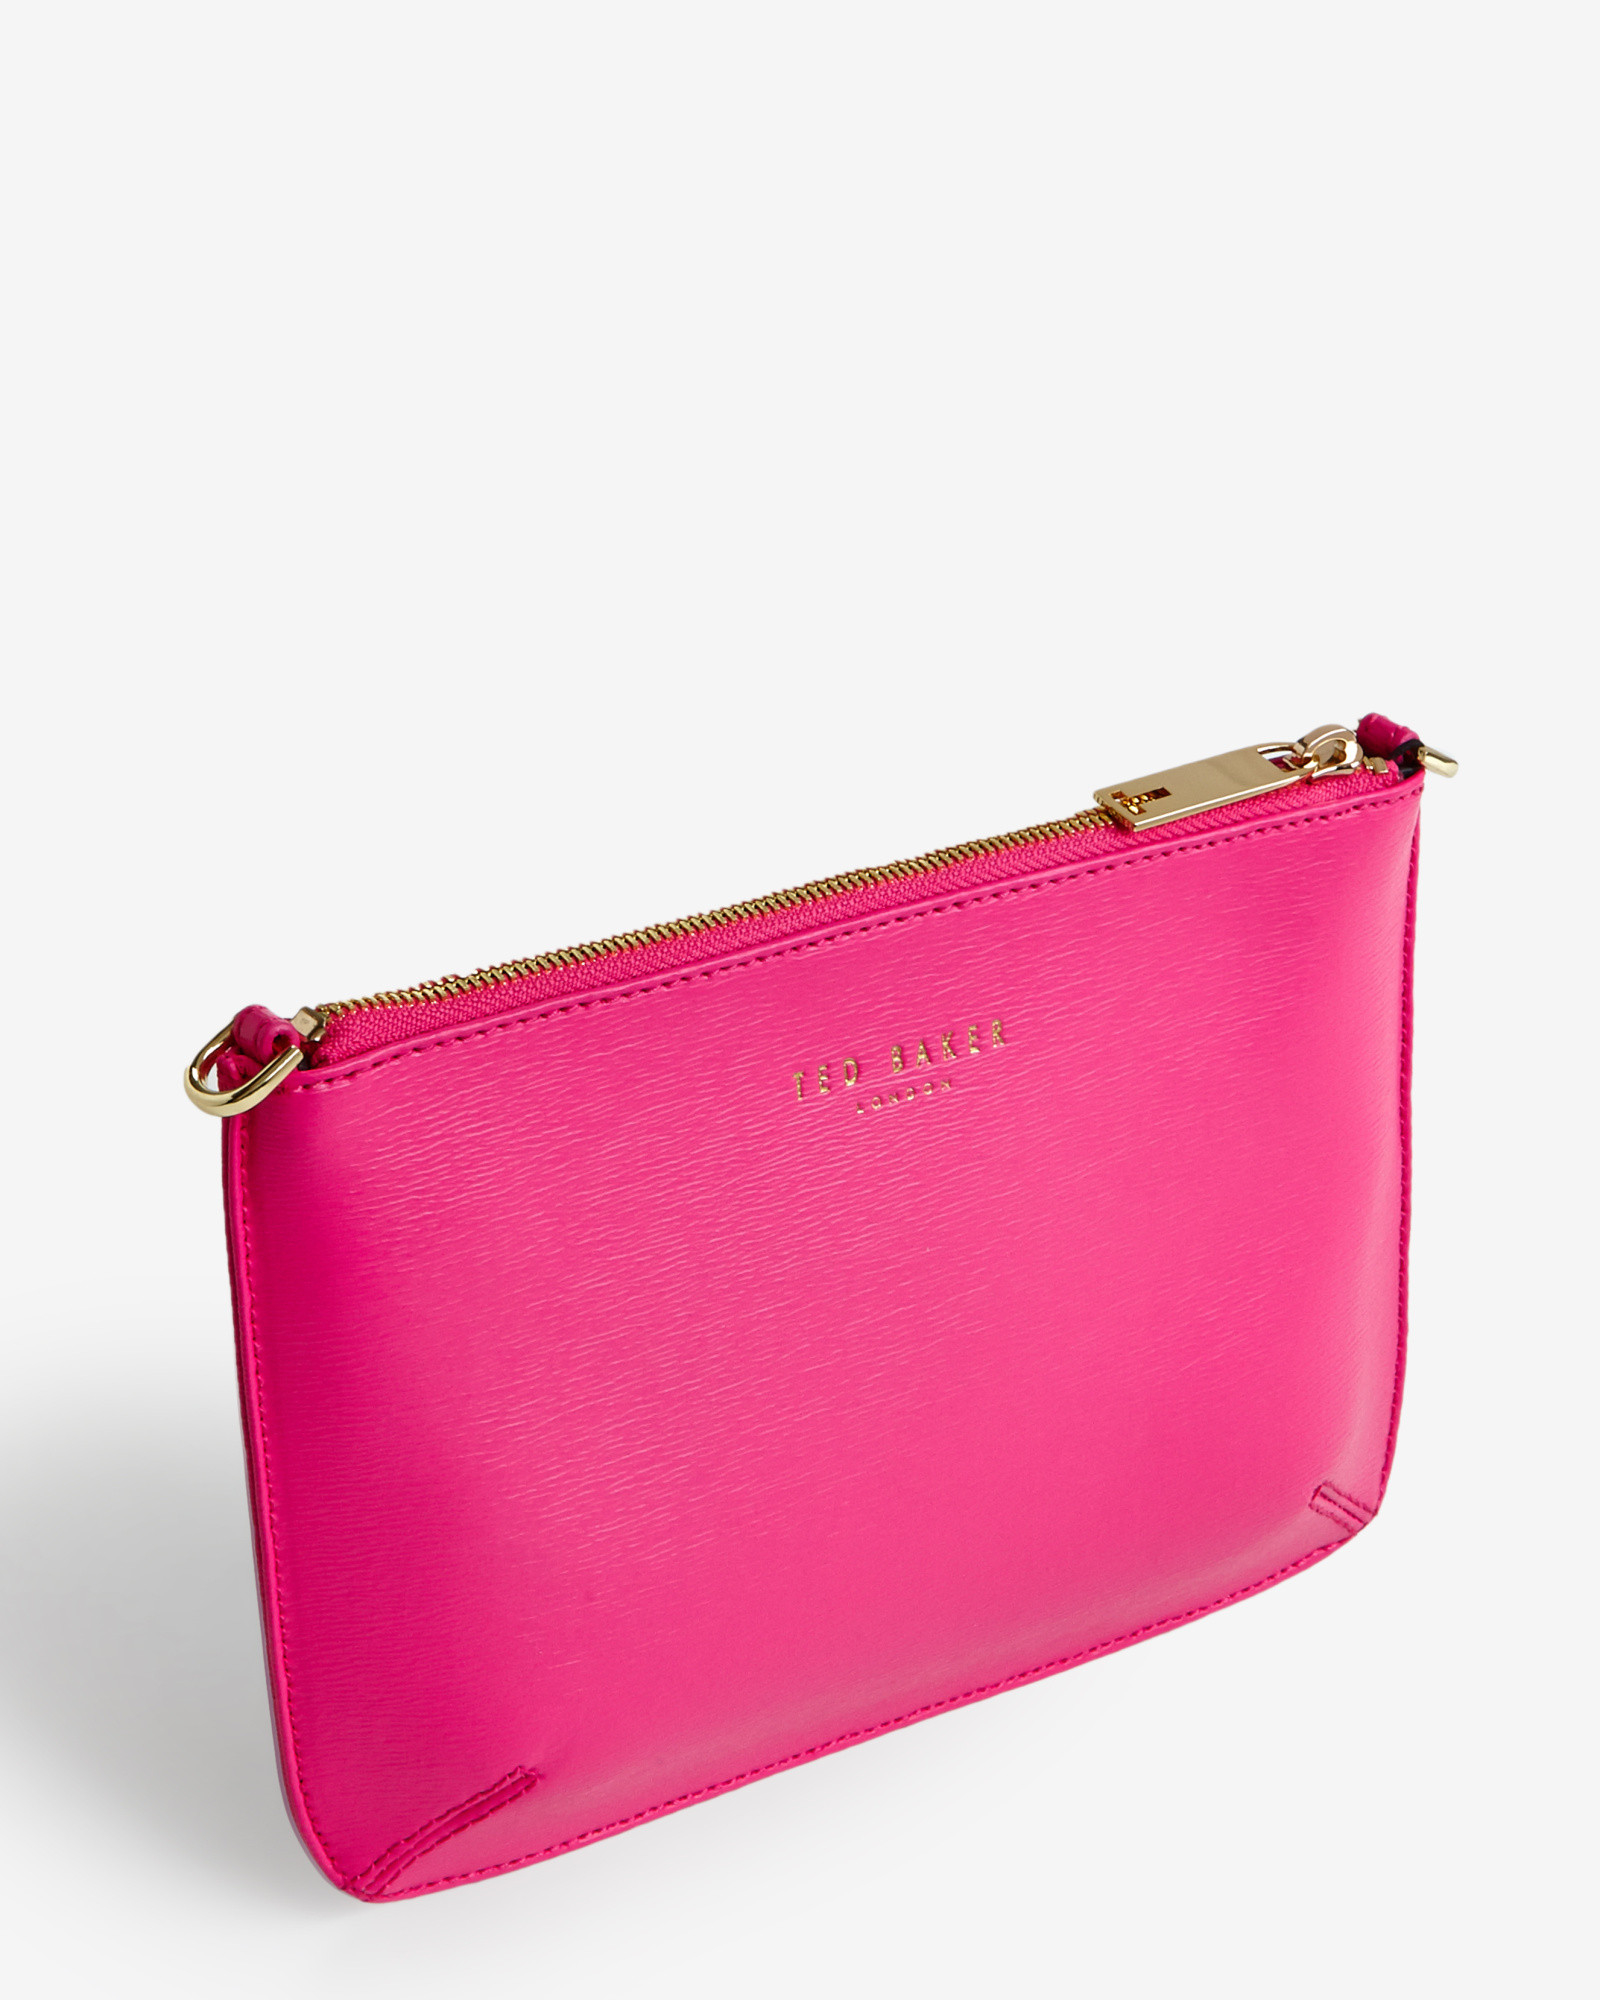 Ted baker Crosshatch Clutch Bag in Pink | Lyst